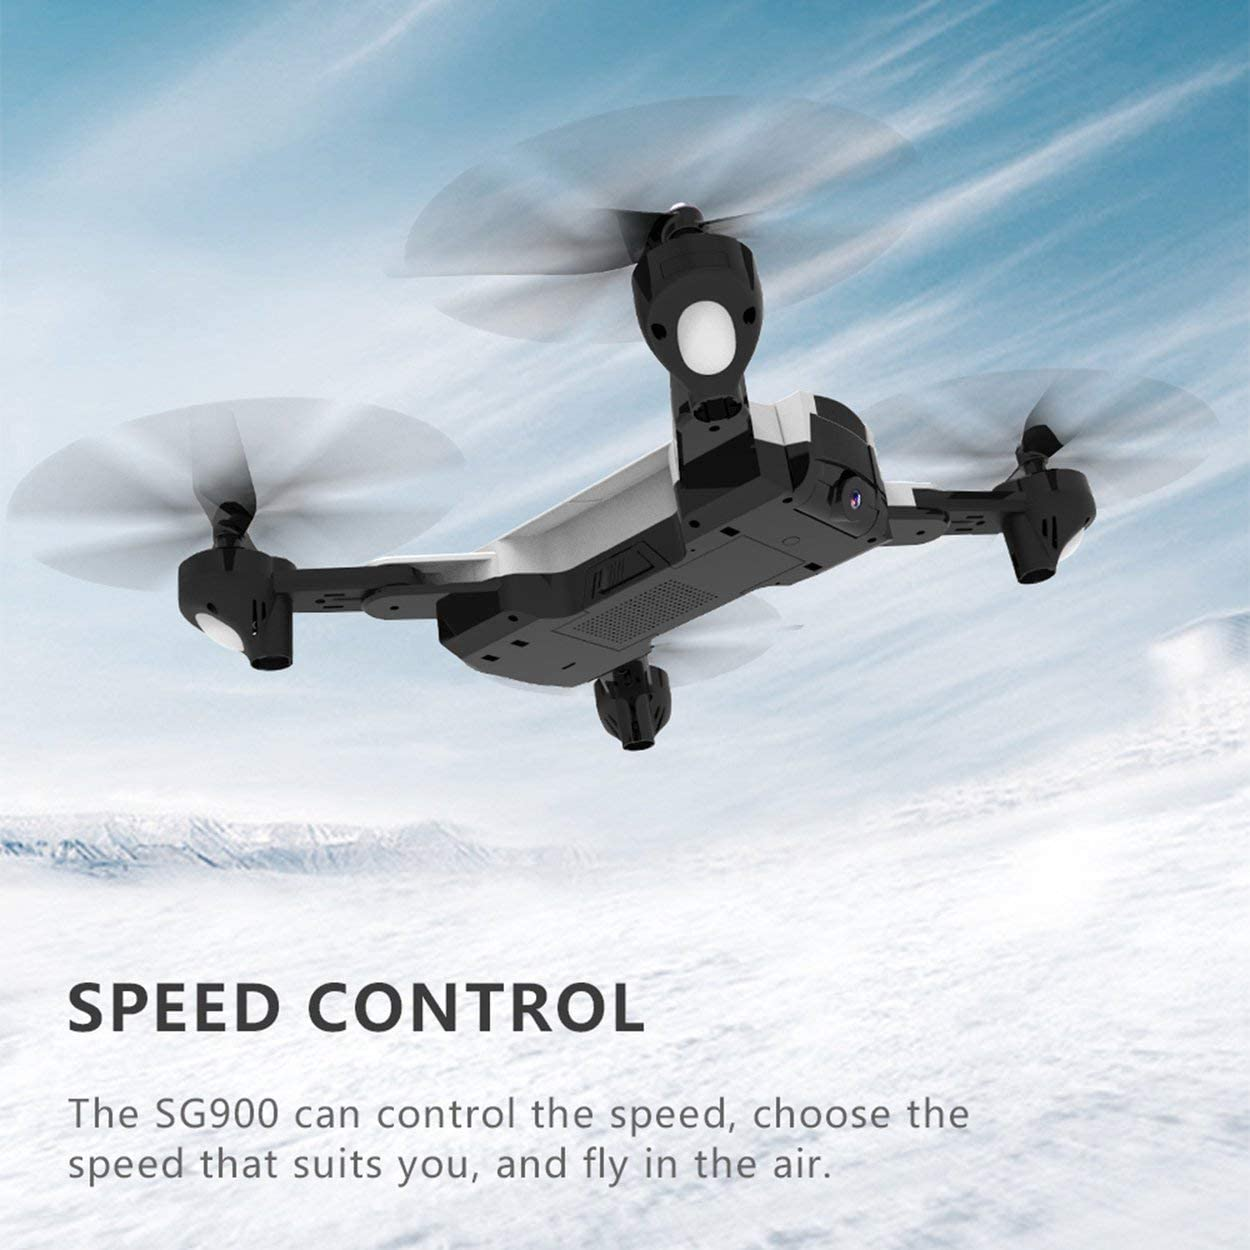 SG900 2.4G Foldable 720P FPV Optical Flow Positioning 22 Minutes Flying Gesture Photo//Video Image Sensing Follow RC Quadcopter